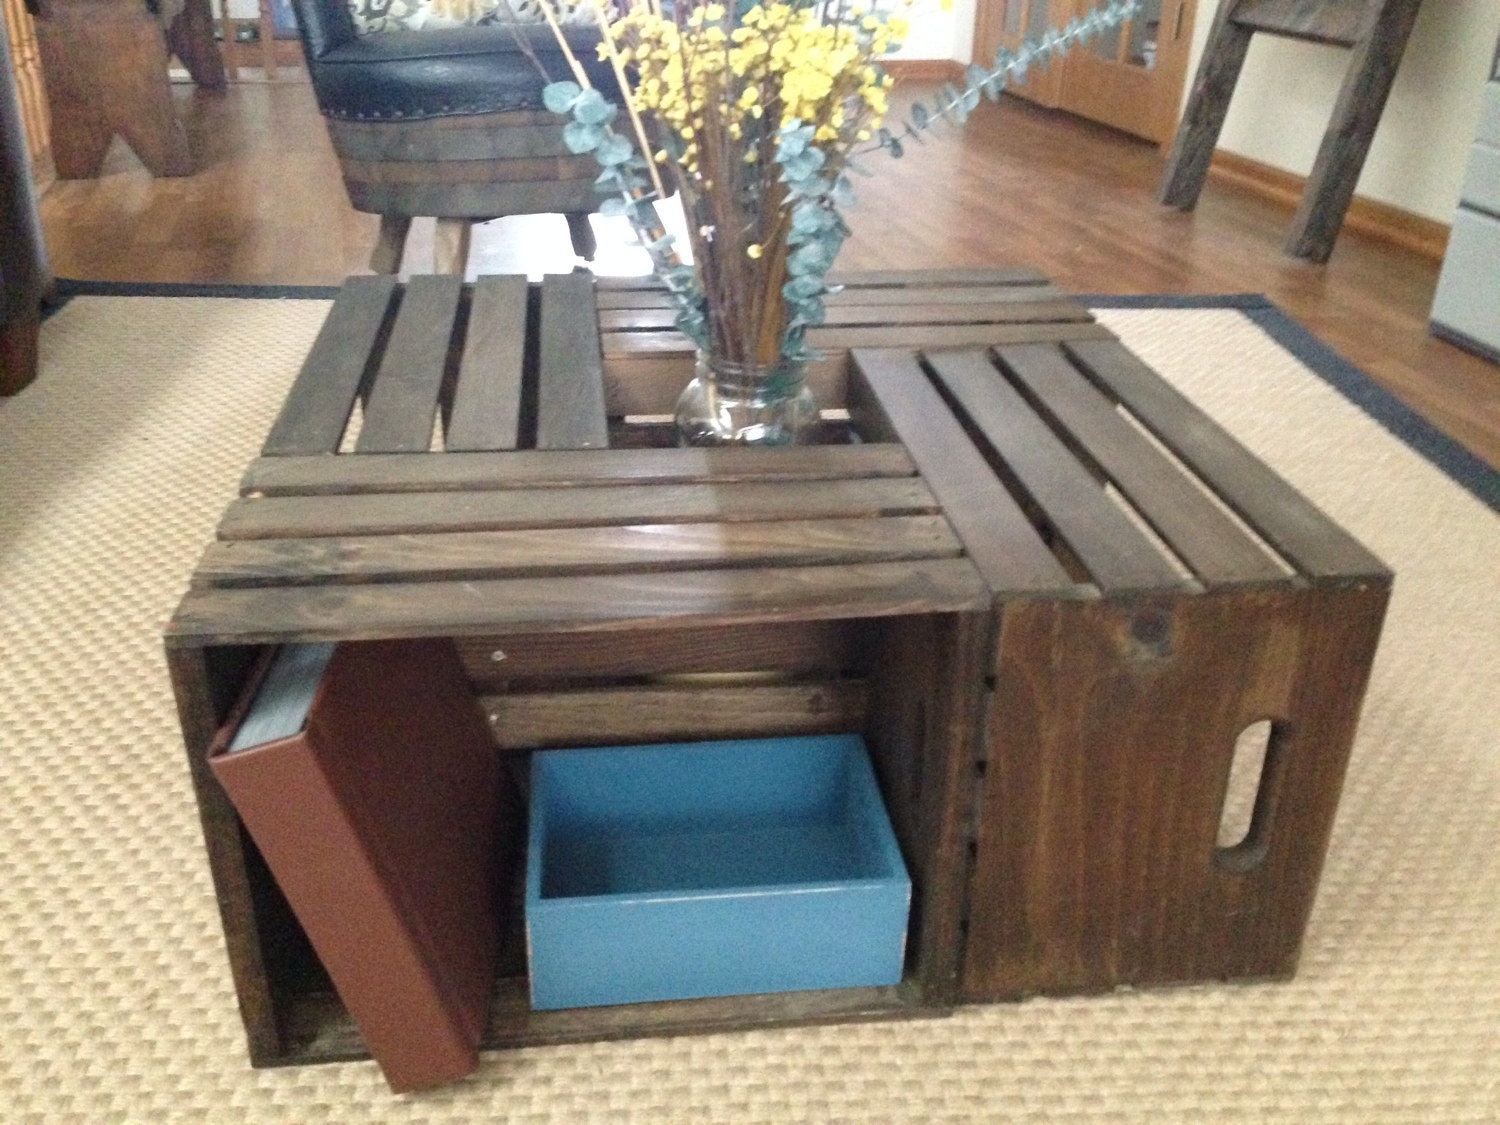 Belle wood wine crate coffee table rustic by sugarriverrestore - Table basse avec caisse en bois ...